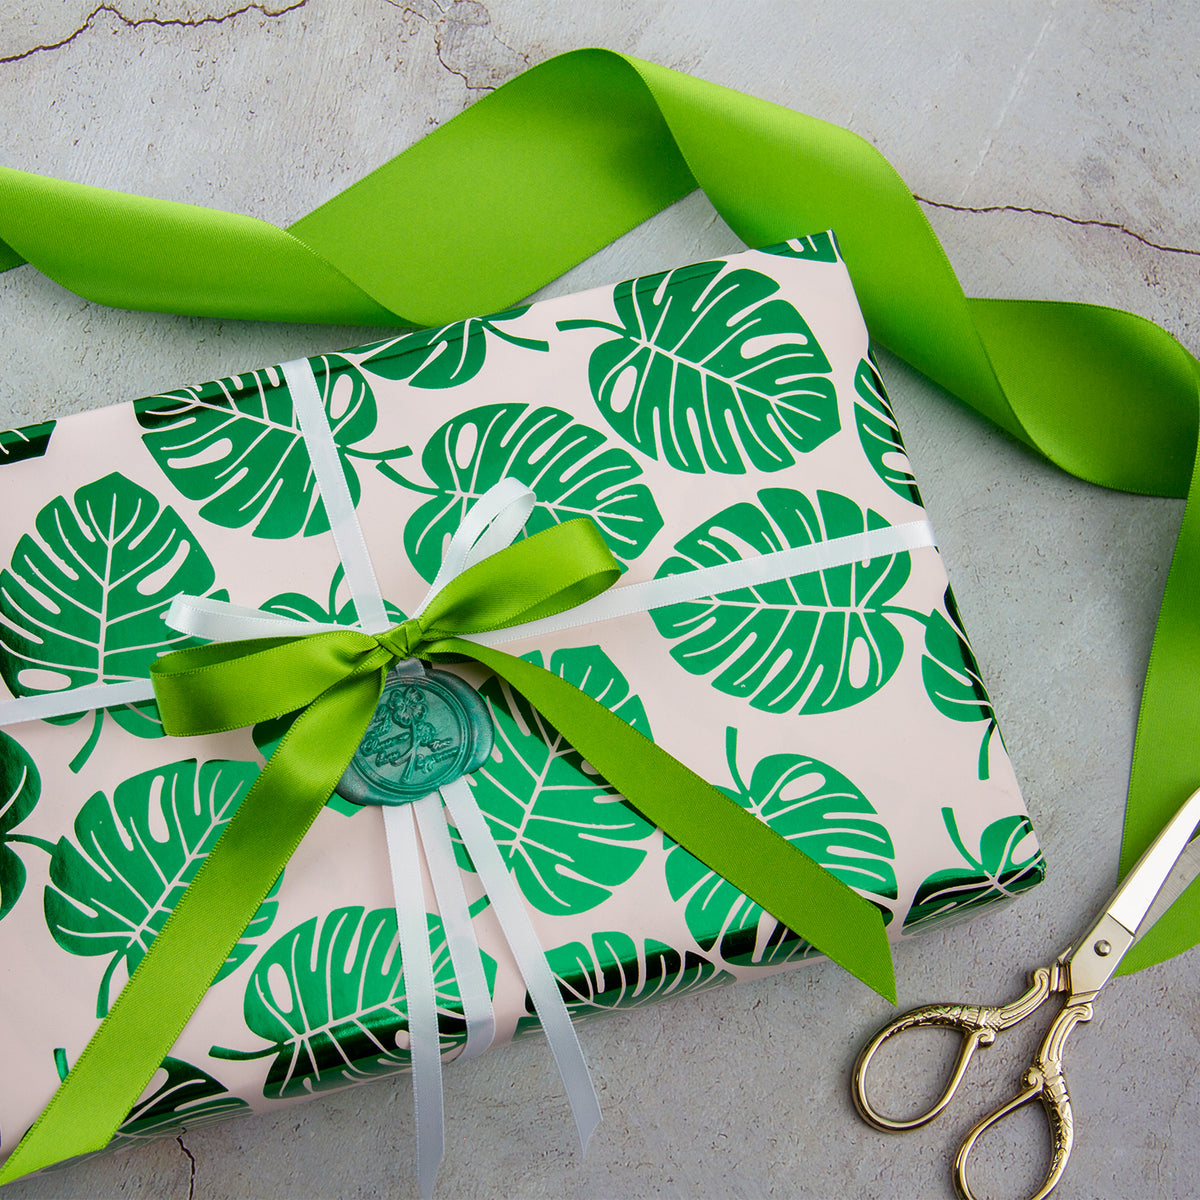 Wrapaholic-Green-Foil-Tropical-Palm-Leaves-Gift -Wrapping-Paper-Roll-6